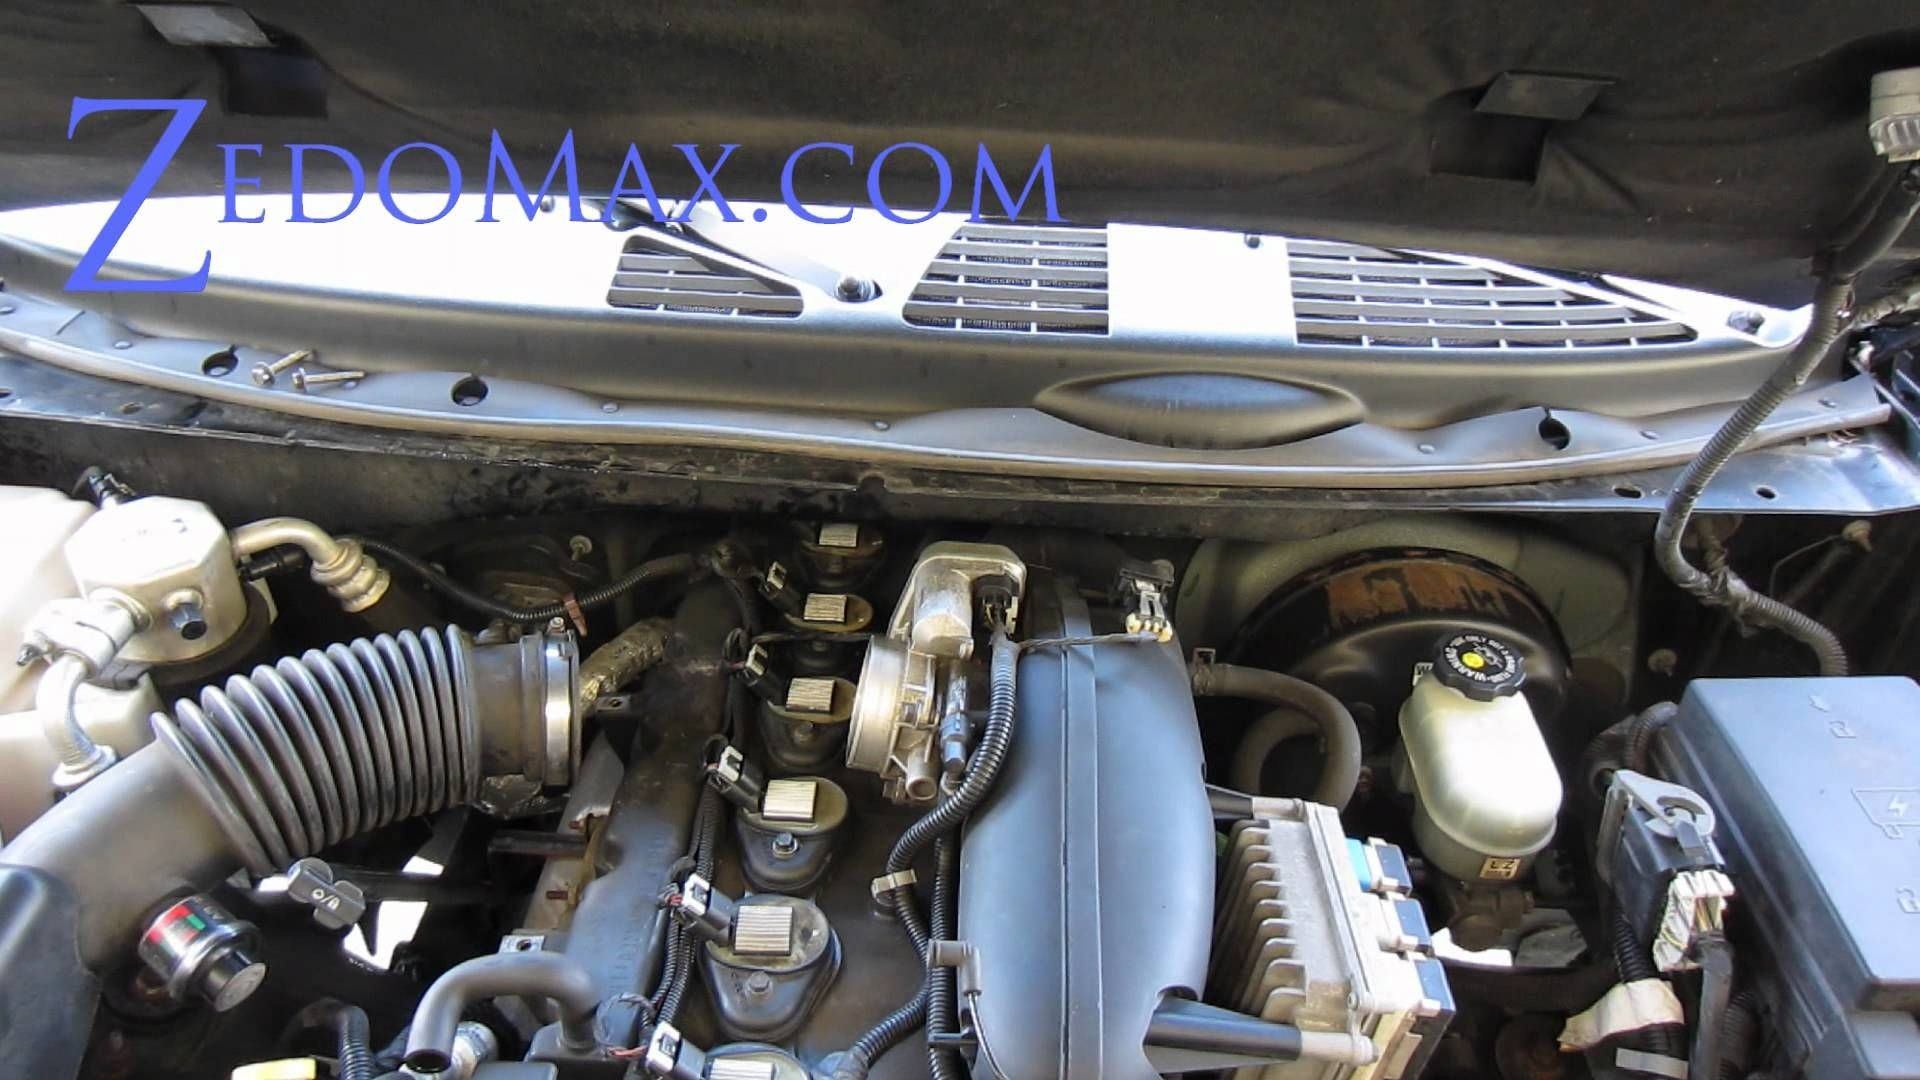 2000 Chevy Blazer Engine Diagram Wiring Tachometer 1999 How To Replace Ignition Coil Spark Plugs On Trailblazer Of